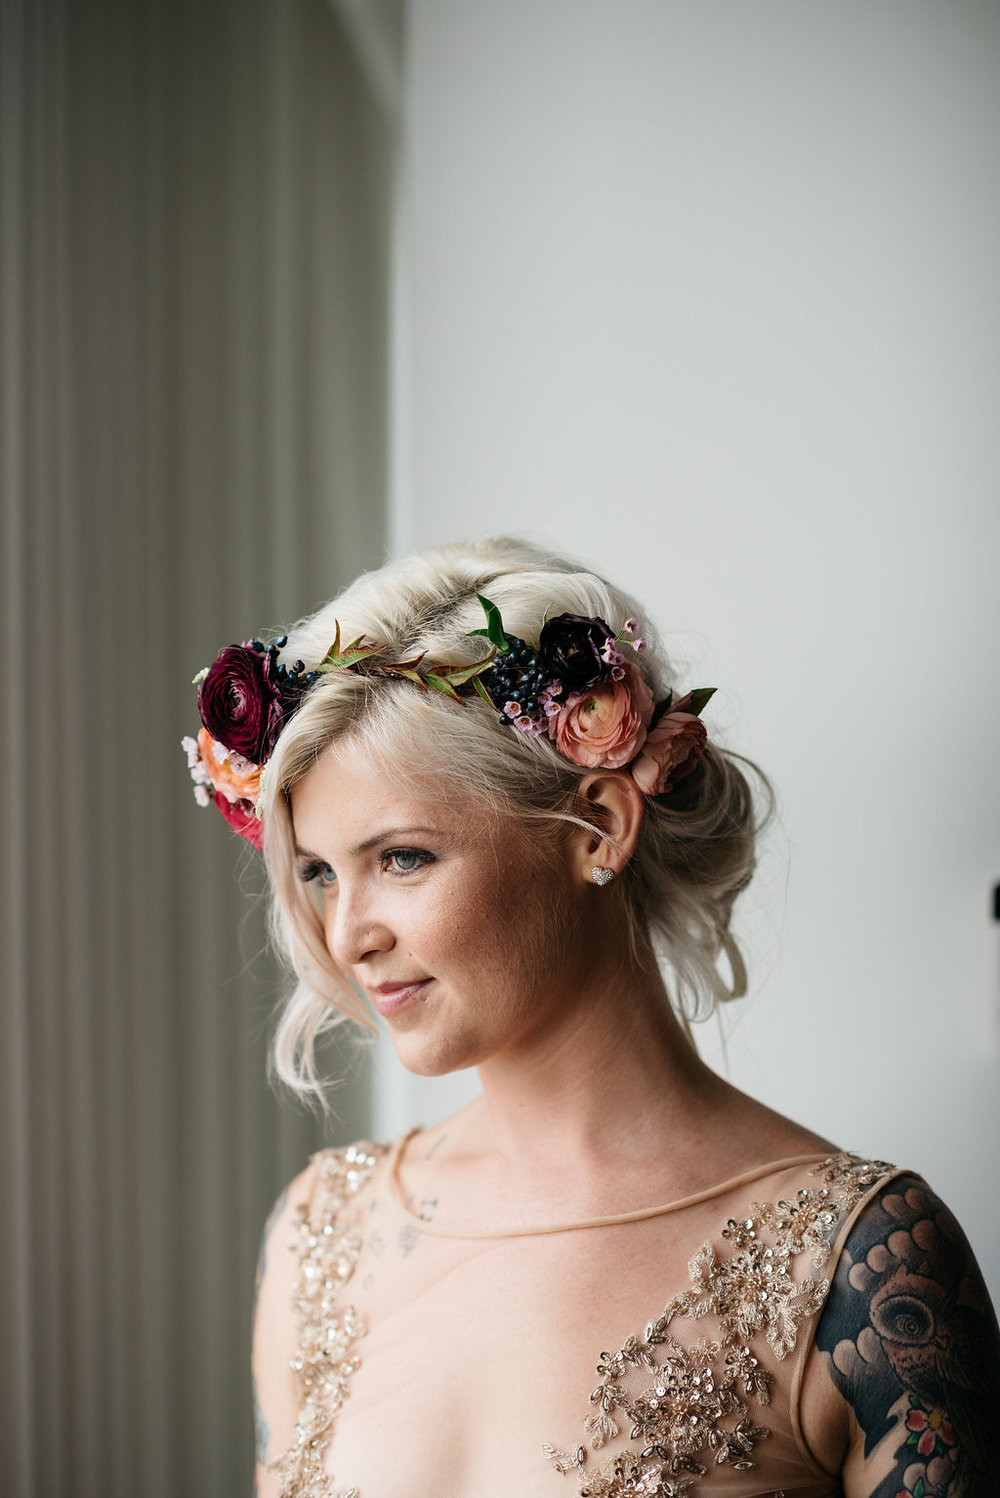 Floral Crown by Passion Roots | Studio Something Photography | Oahu, Hawaii